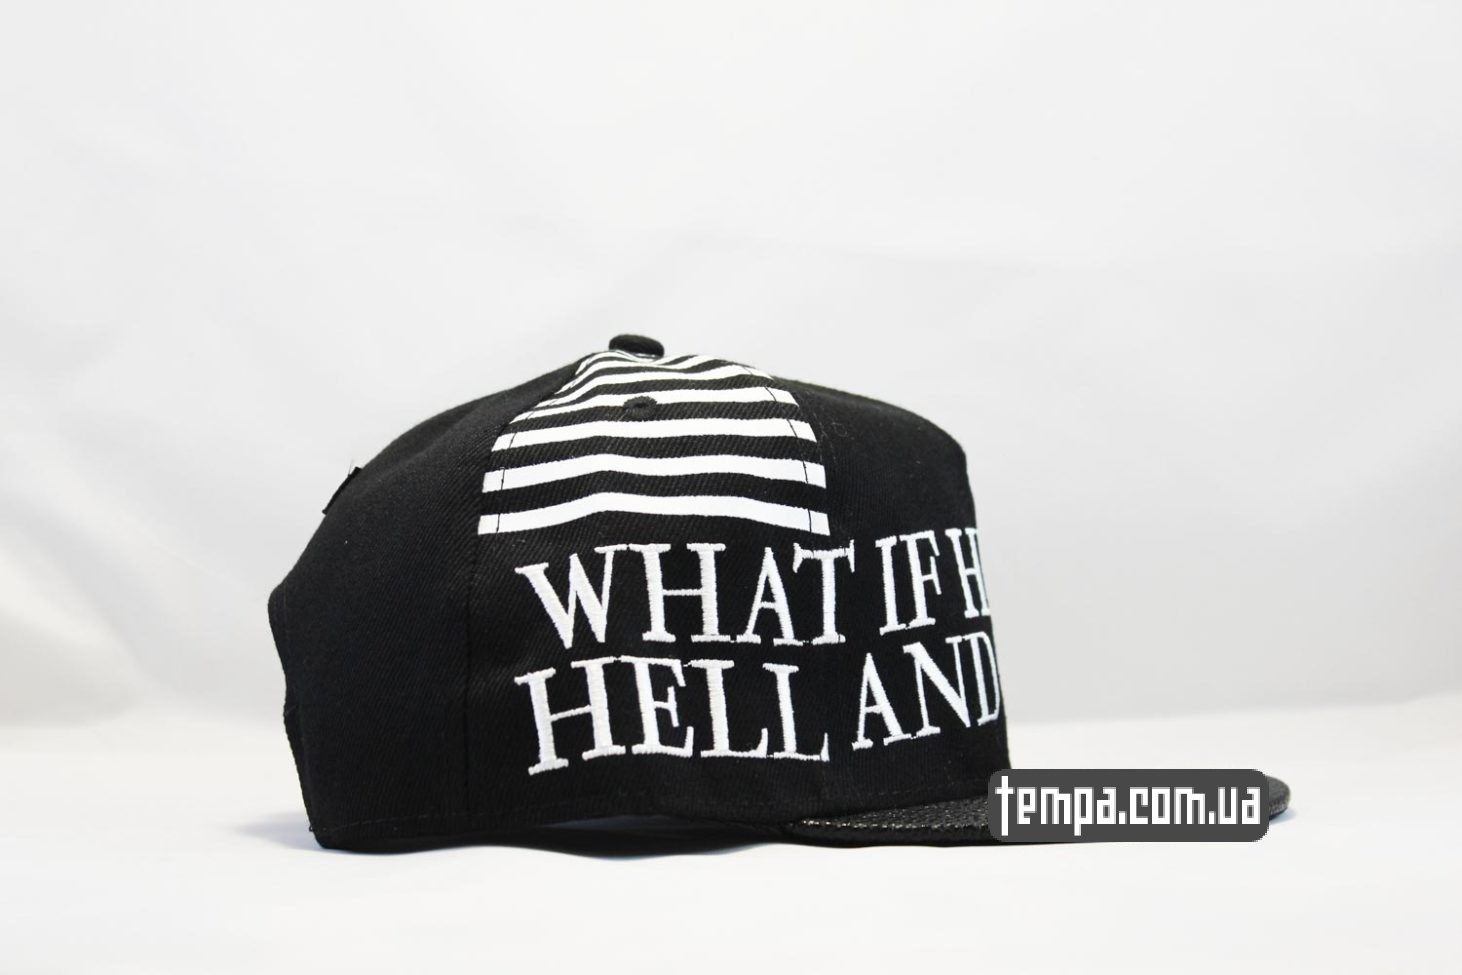 прямой козырек snapback кепка What if Heaven was Hell and vica versa Pastor Troy cayler and sons